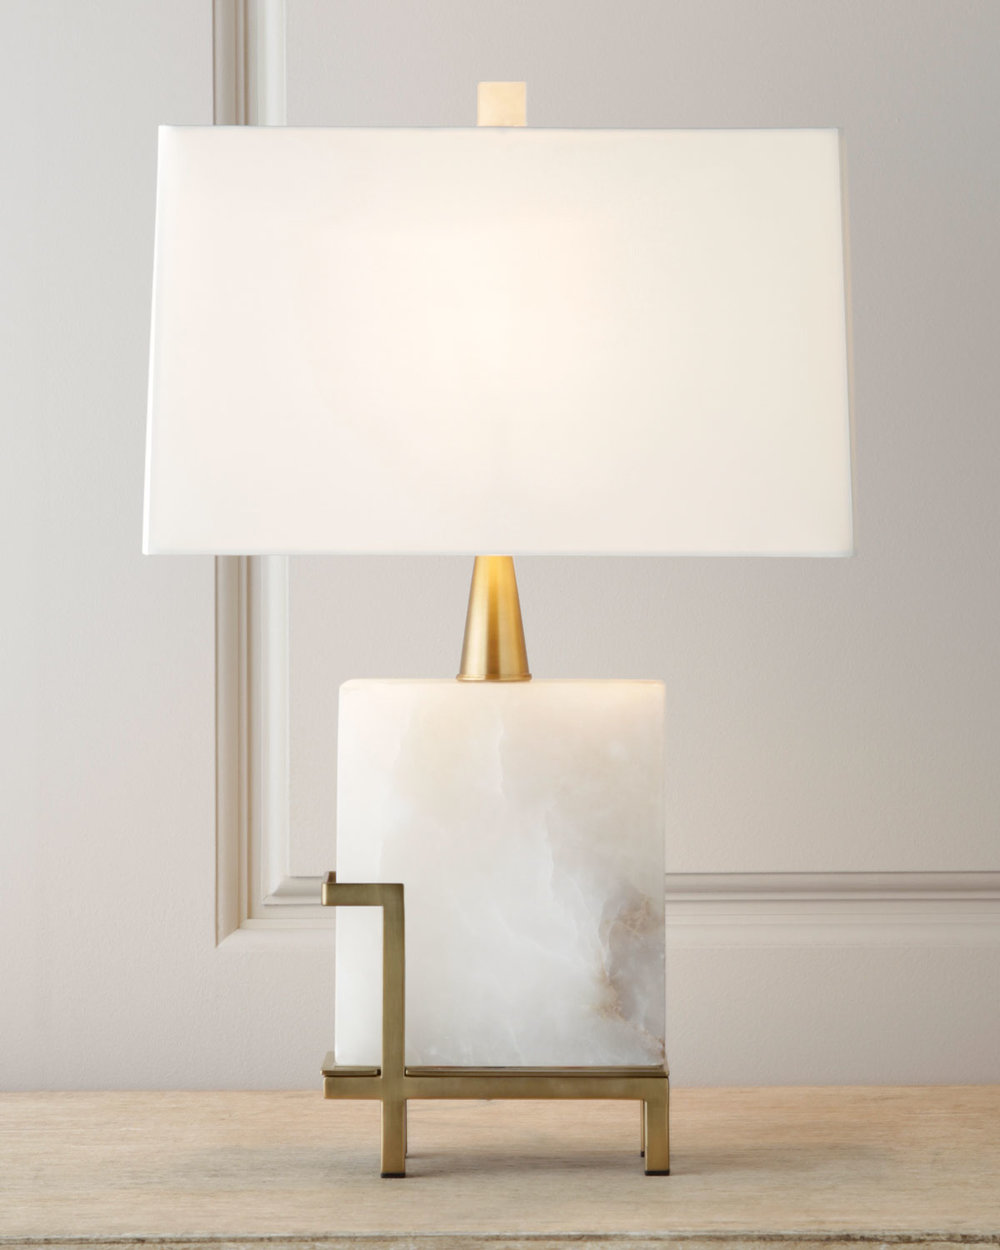 Arteriors Hearst Lamp